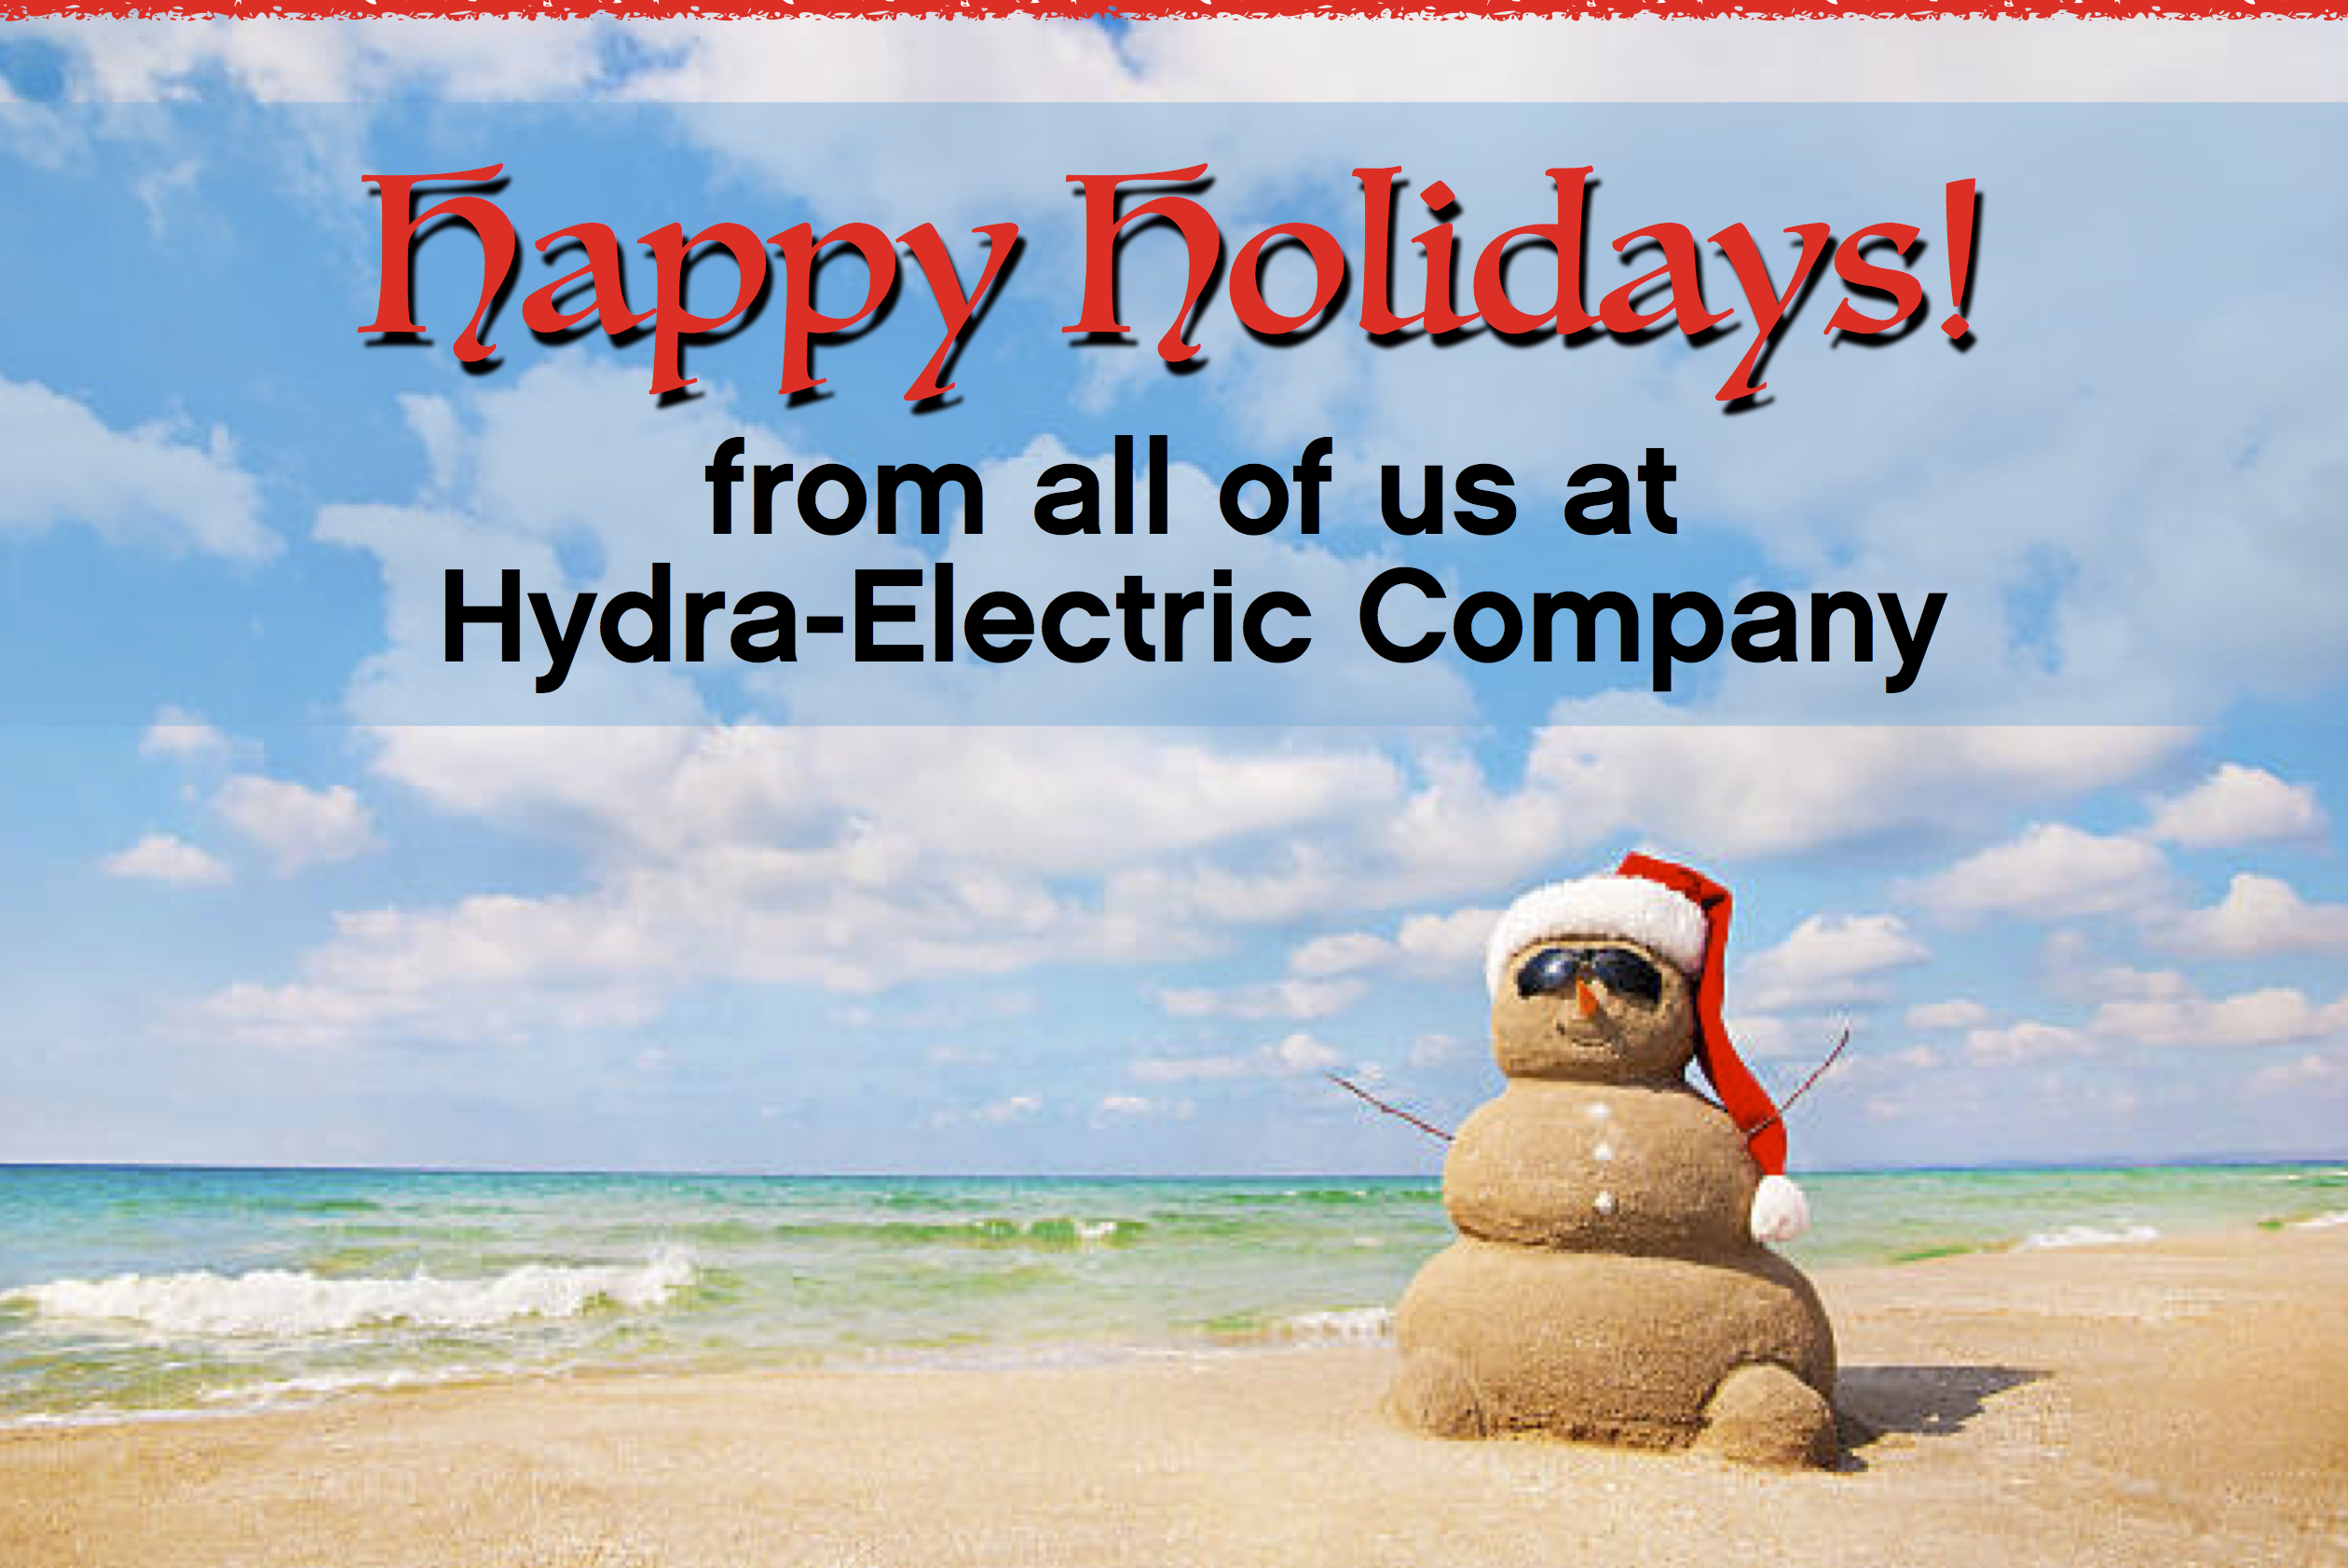 HAPPY HOLIDAYS!  See our holiday schedule.